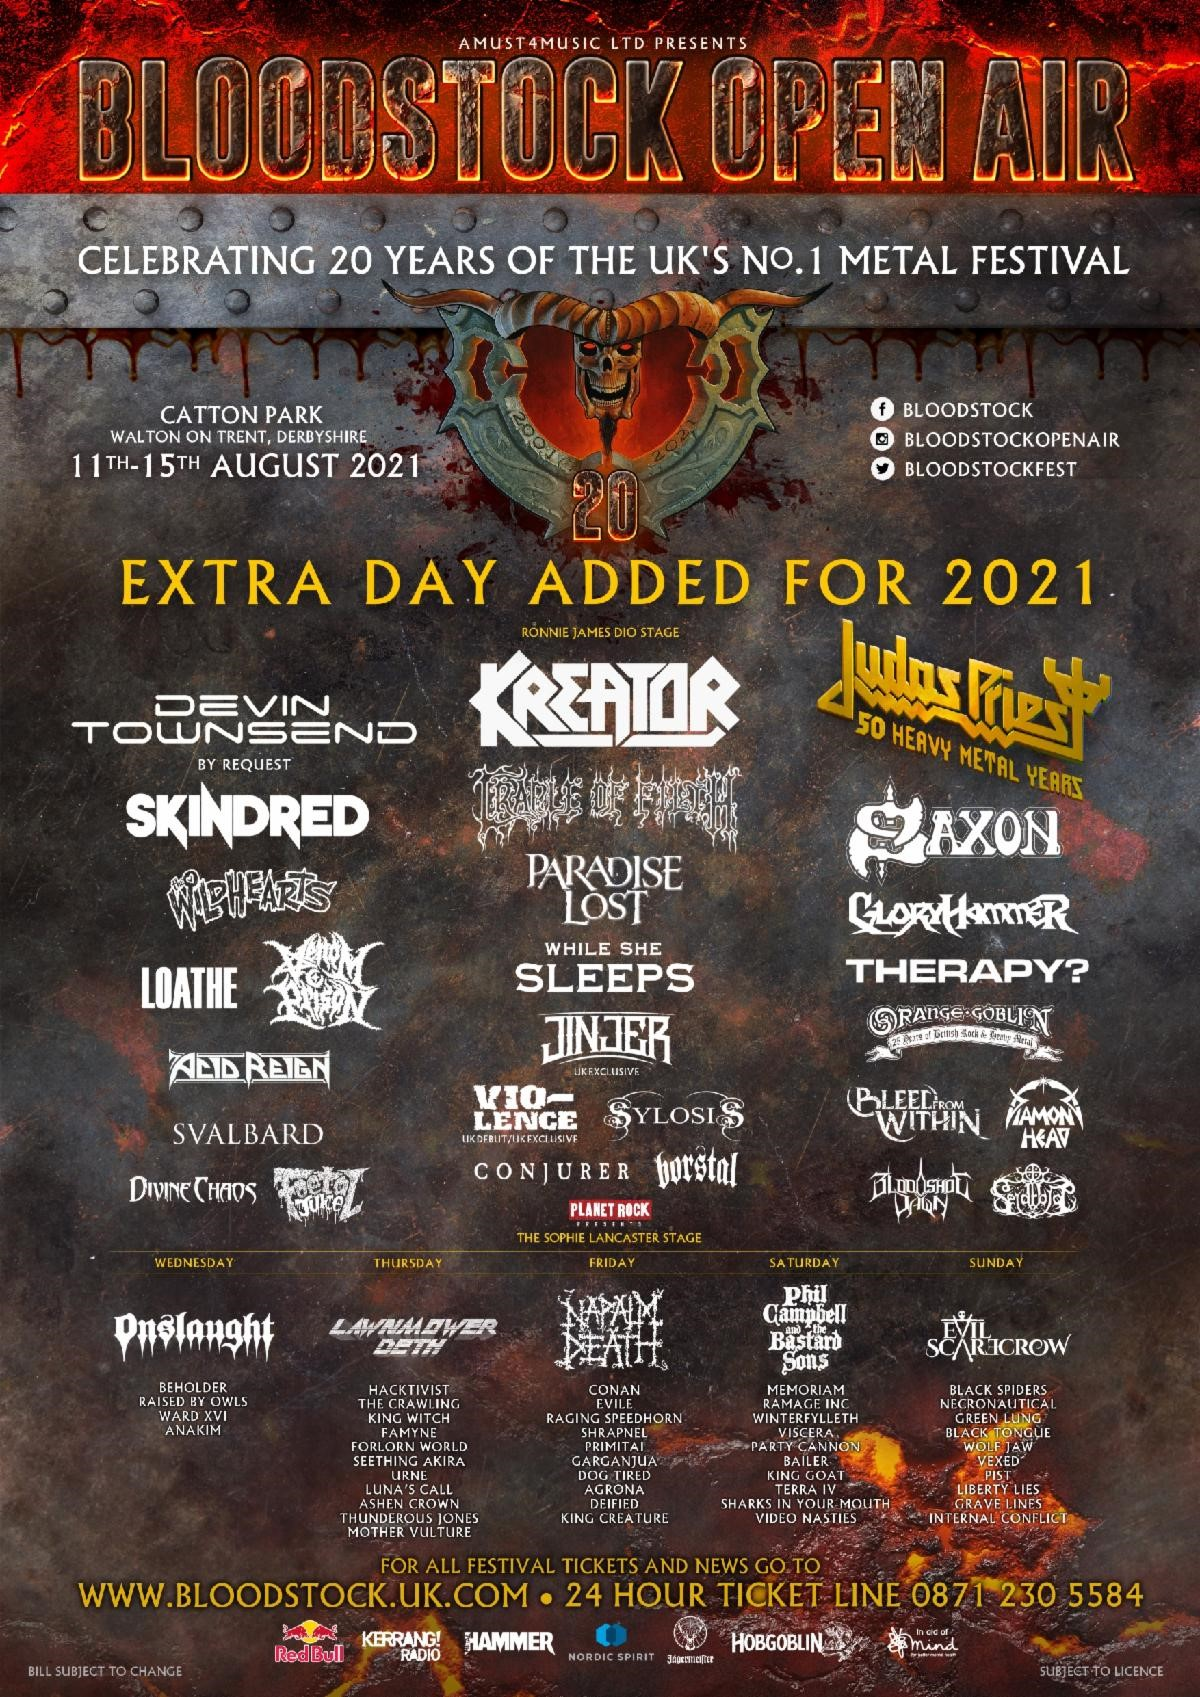 News: Bloodstock's Weekend Tickets Sell Out, Day Tickets Still Available, More Details Revealed